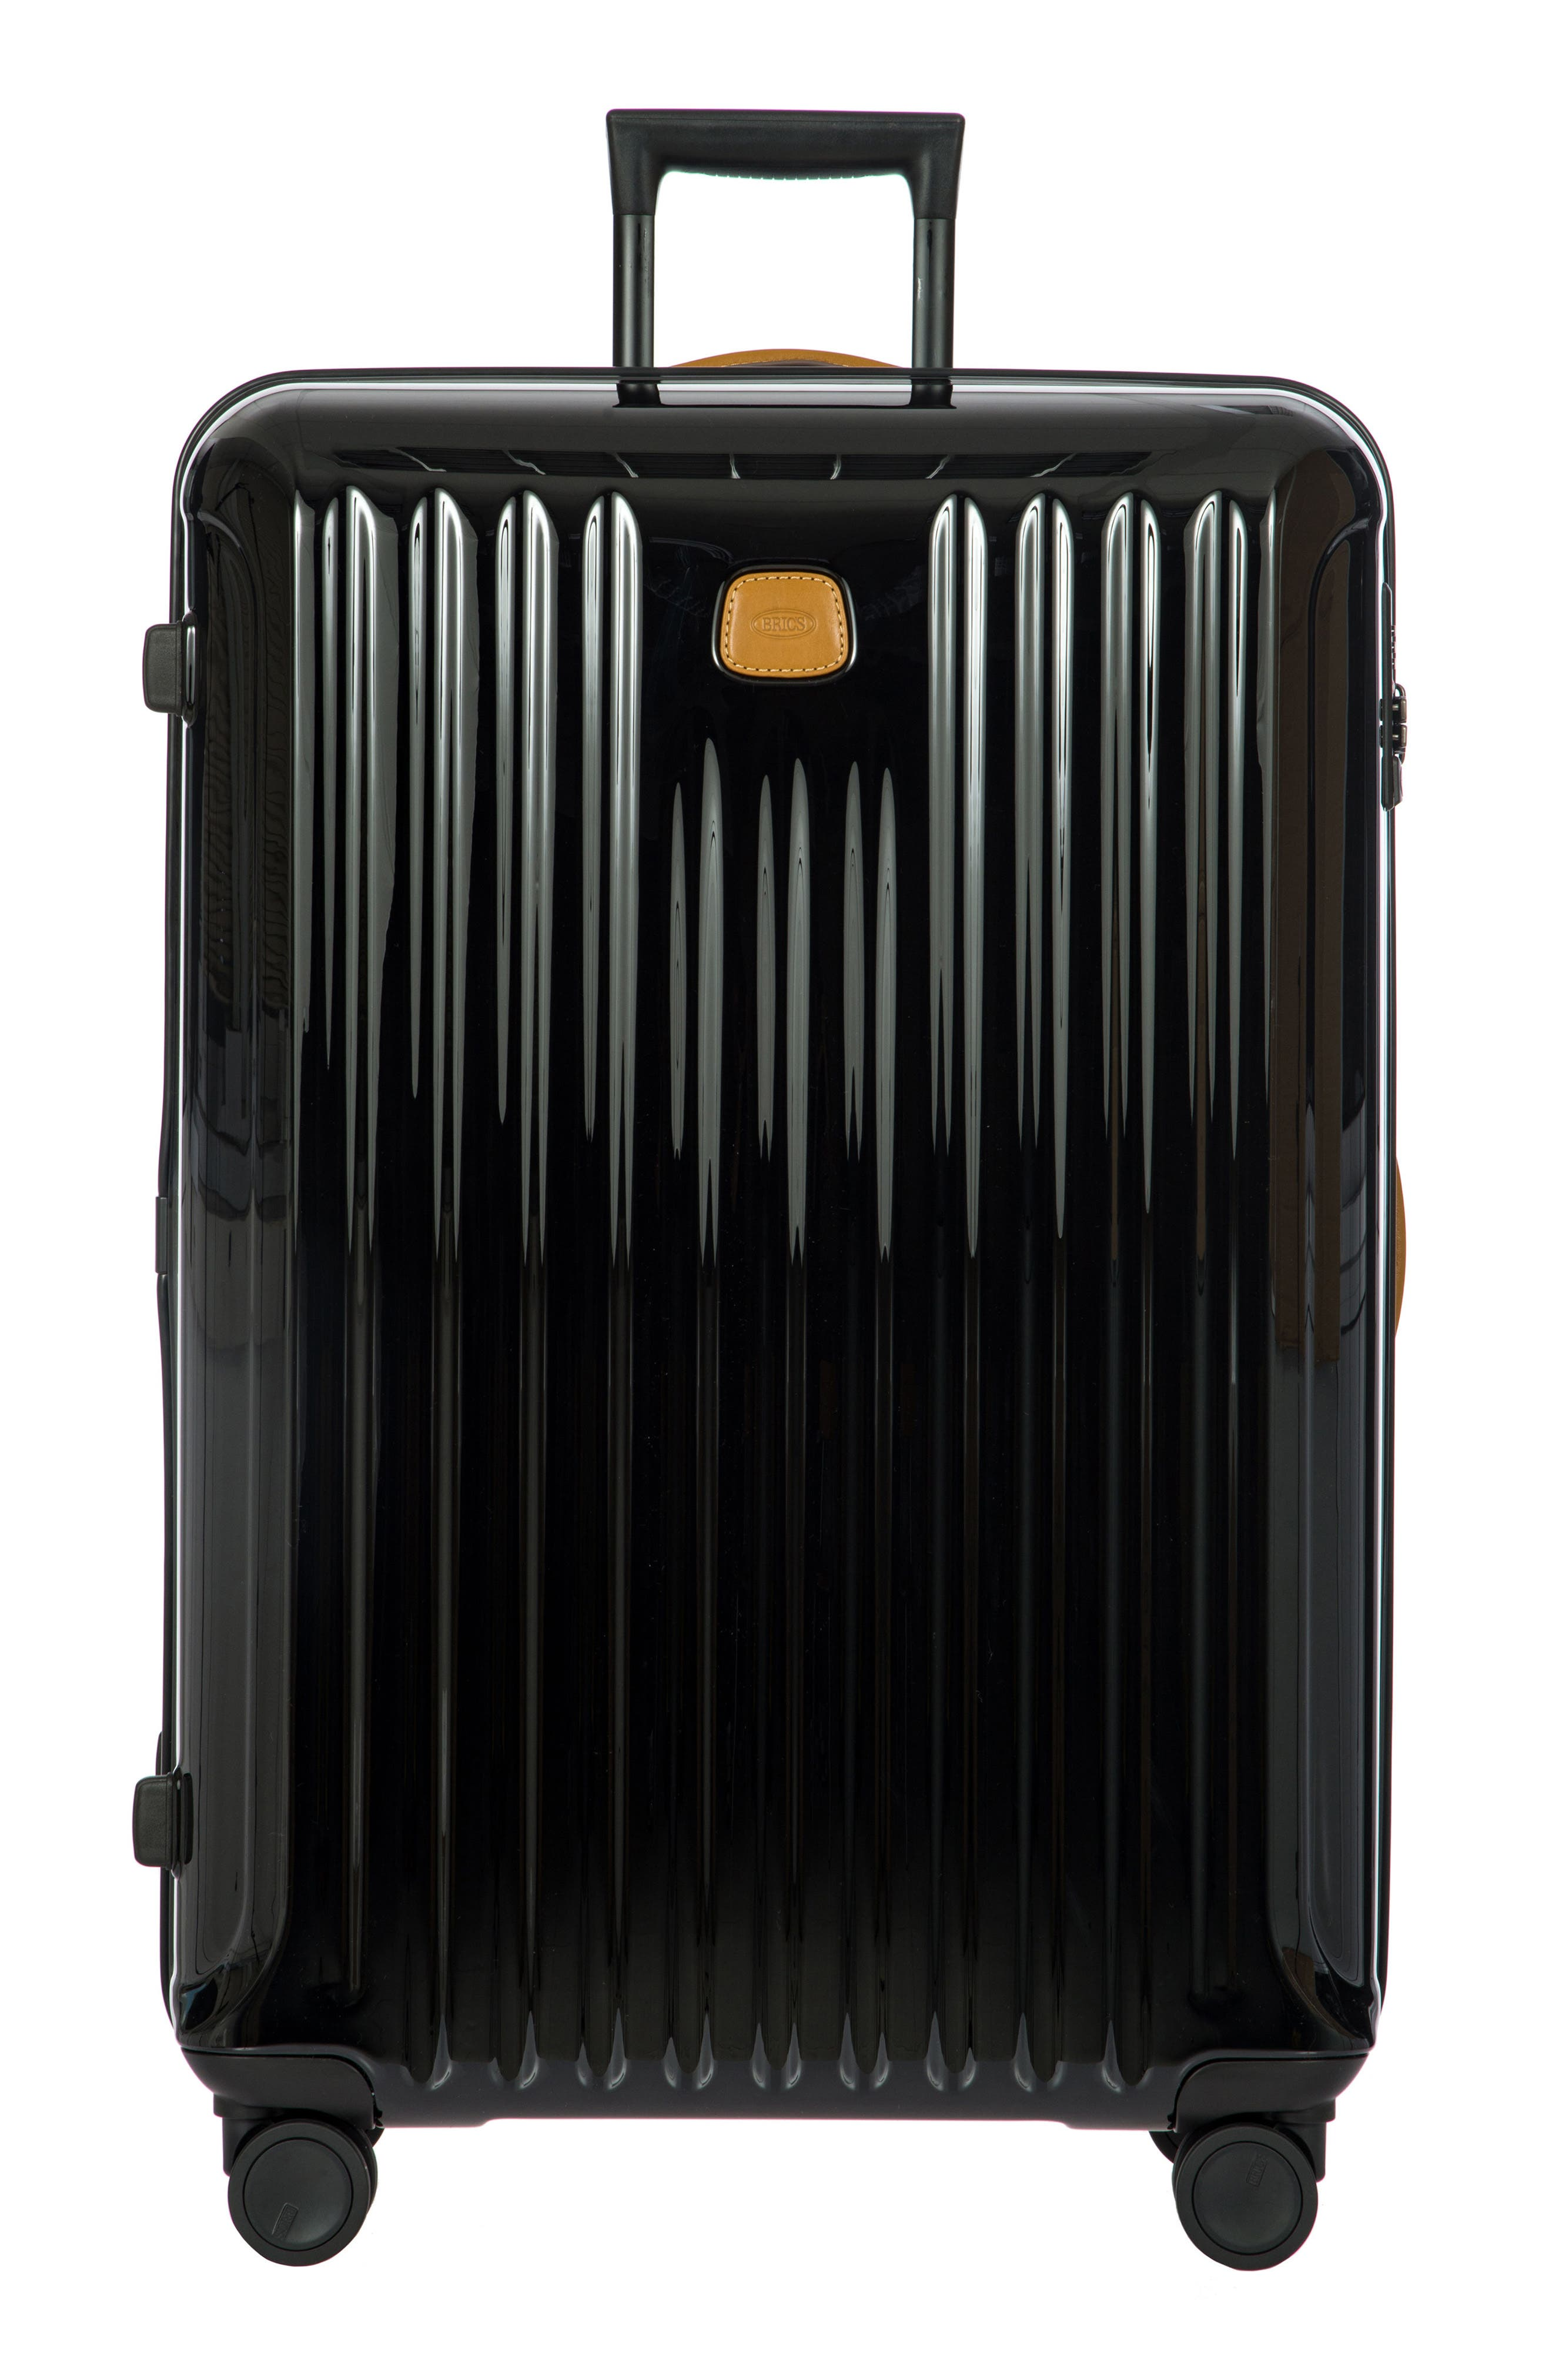 Capri 32-Inch Spinner Suitcase - Black